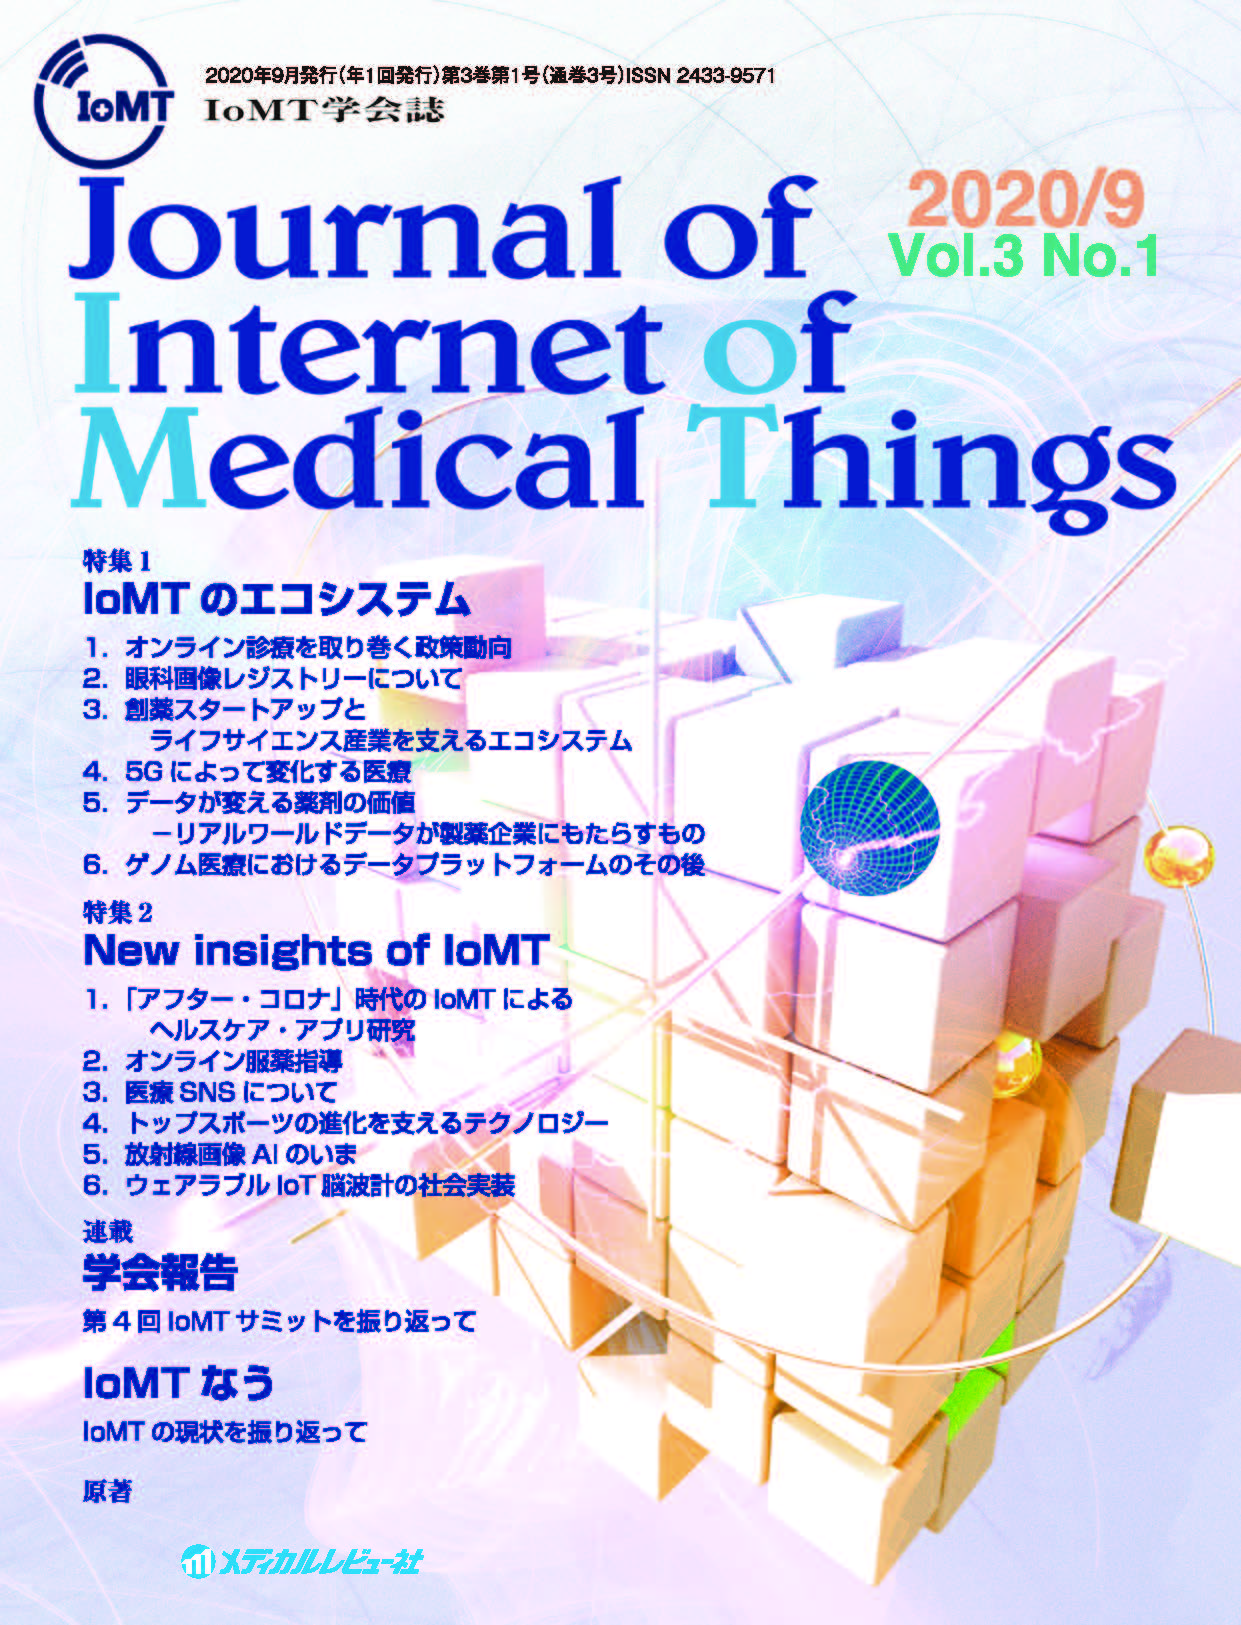 Journal of Internet of Medical Things 2020年9月号(Vol.3 No.1)